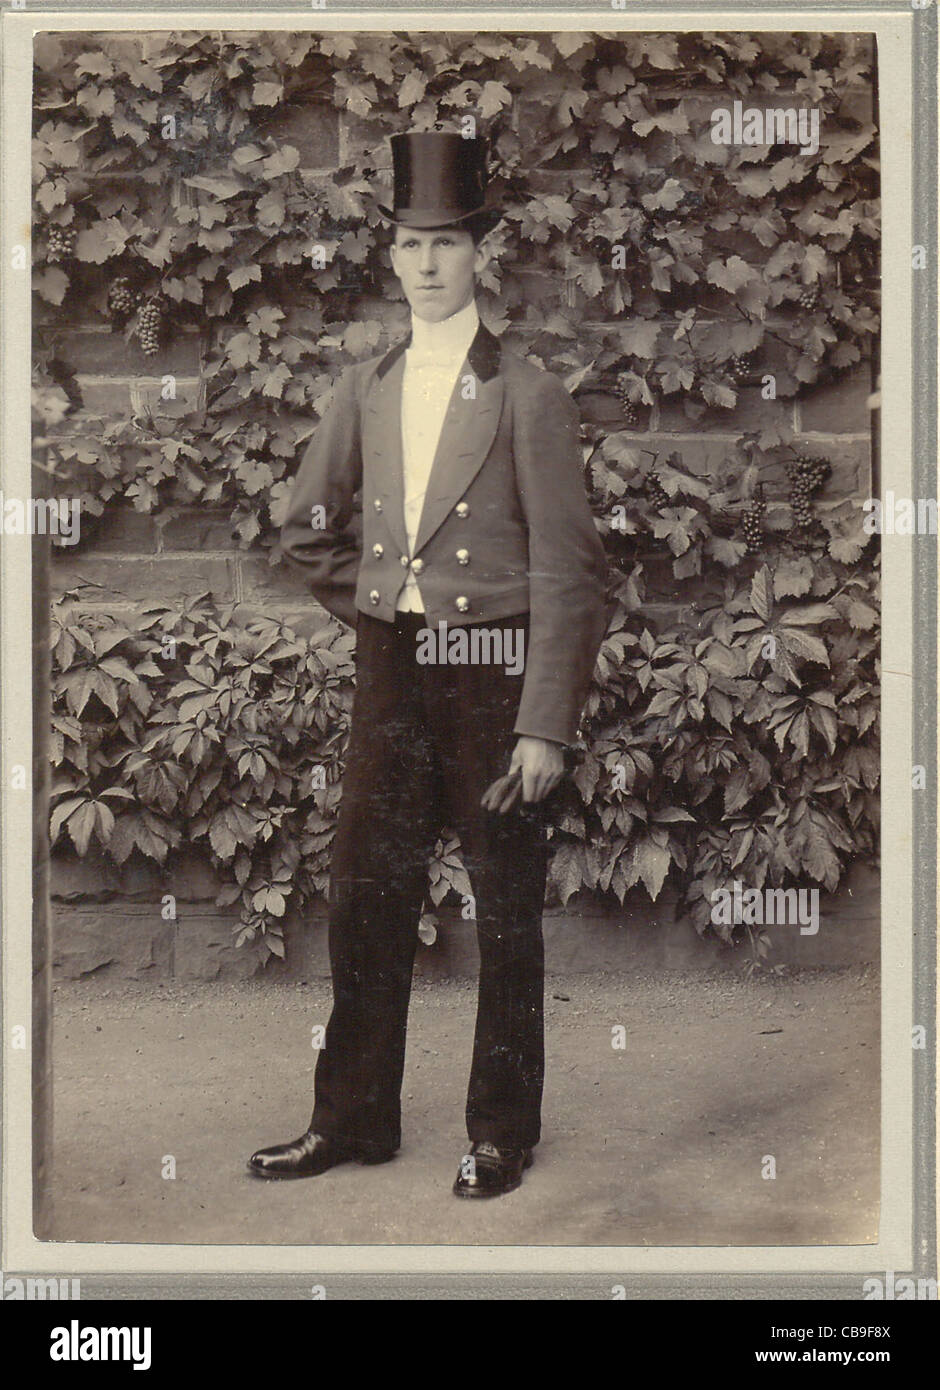 Cabinet photograph of footman Stock Photo